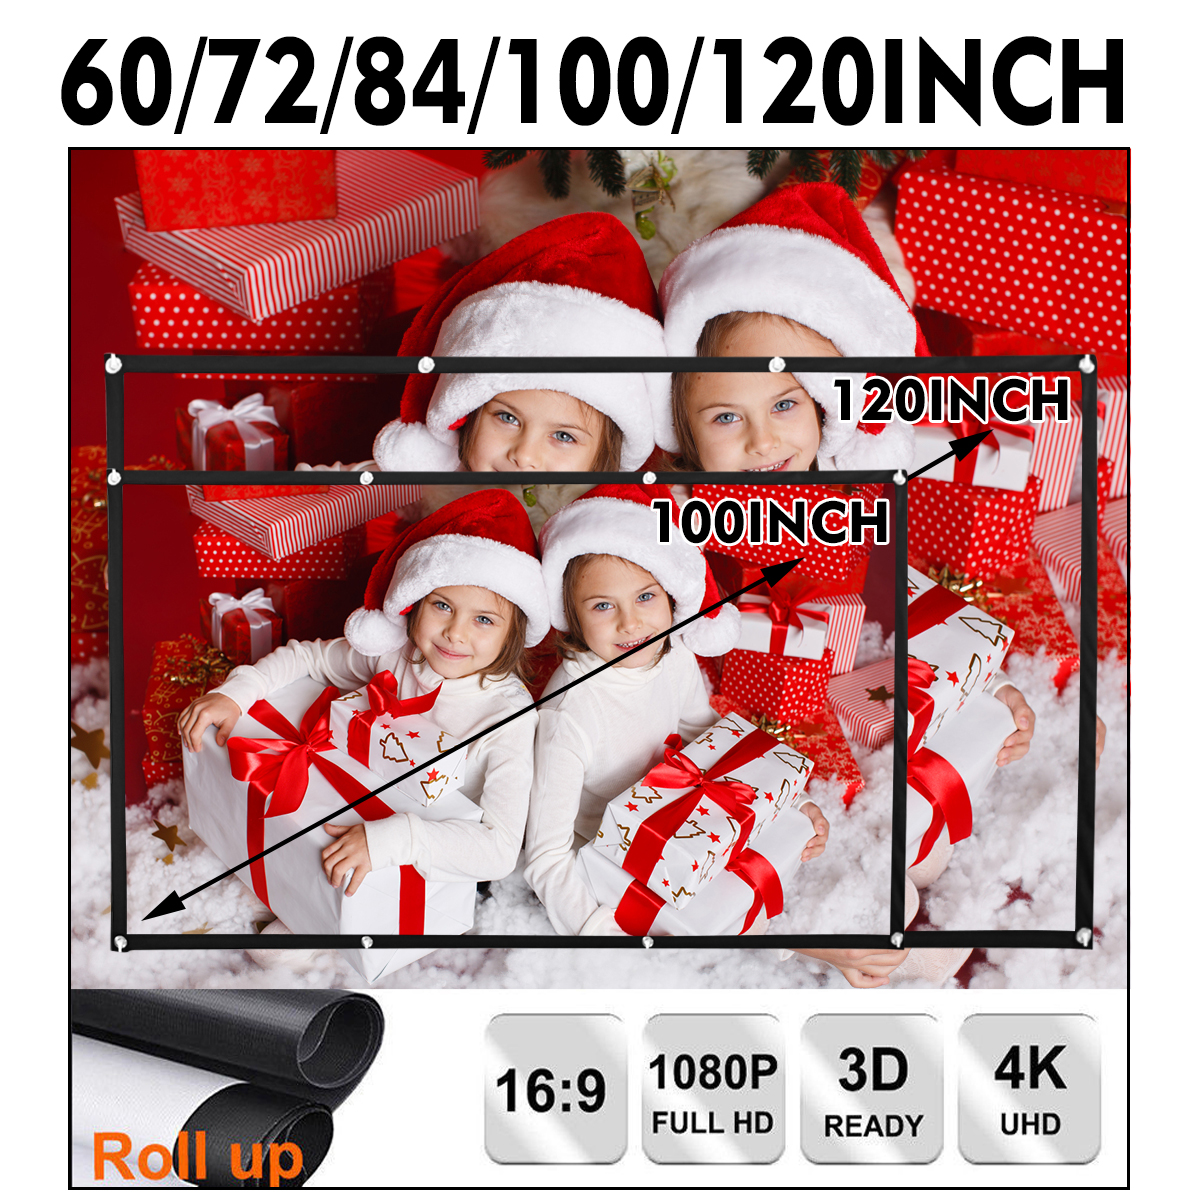 HD 16:9 4K Portable Foldable Movie Manual Projector Screen Projection Home Xmas Party Film Theater Movie TV Christmas Party Cinema FOR WORLD CUP + Office Meeting